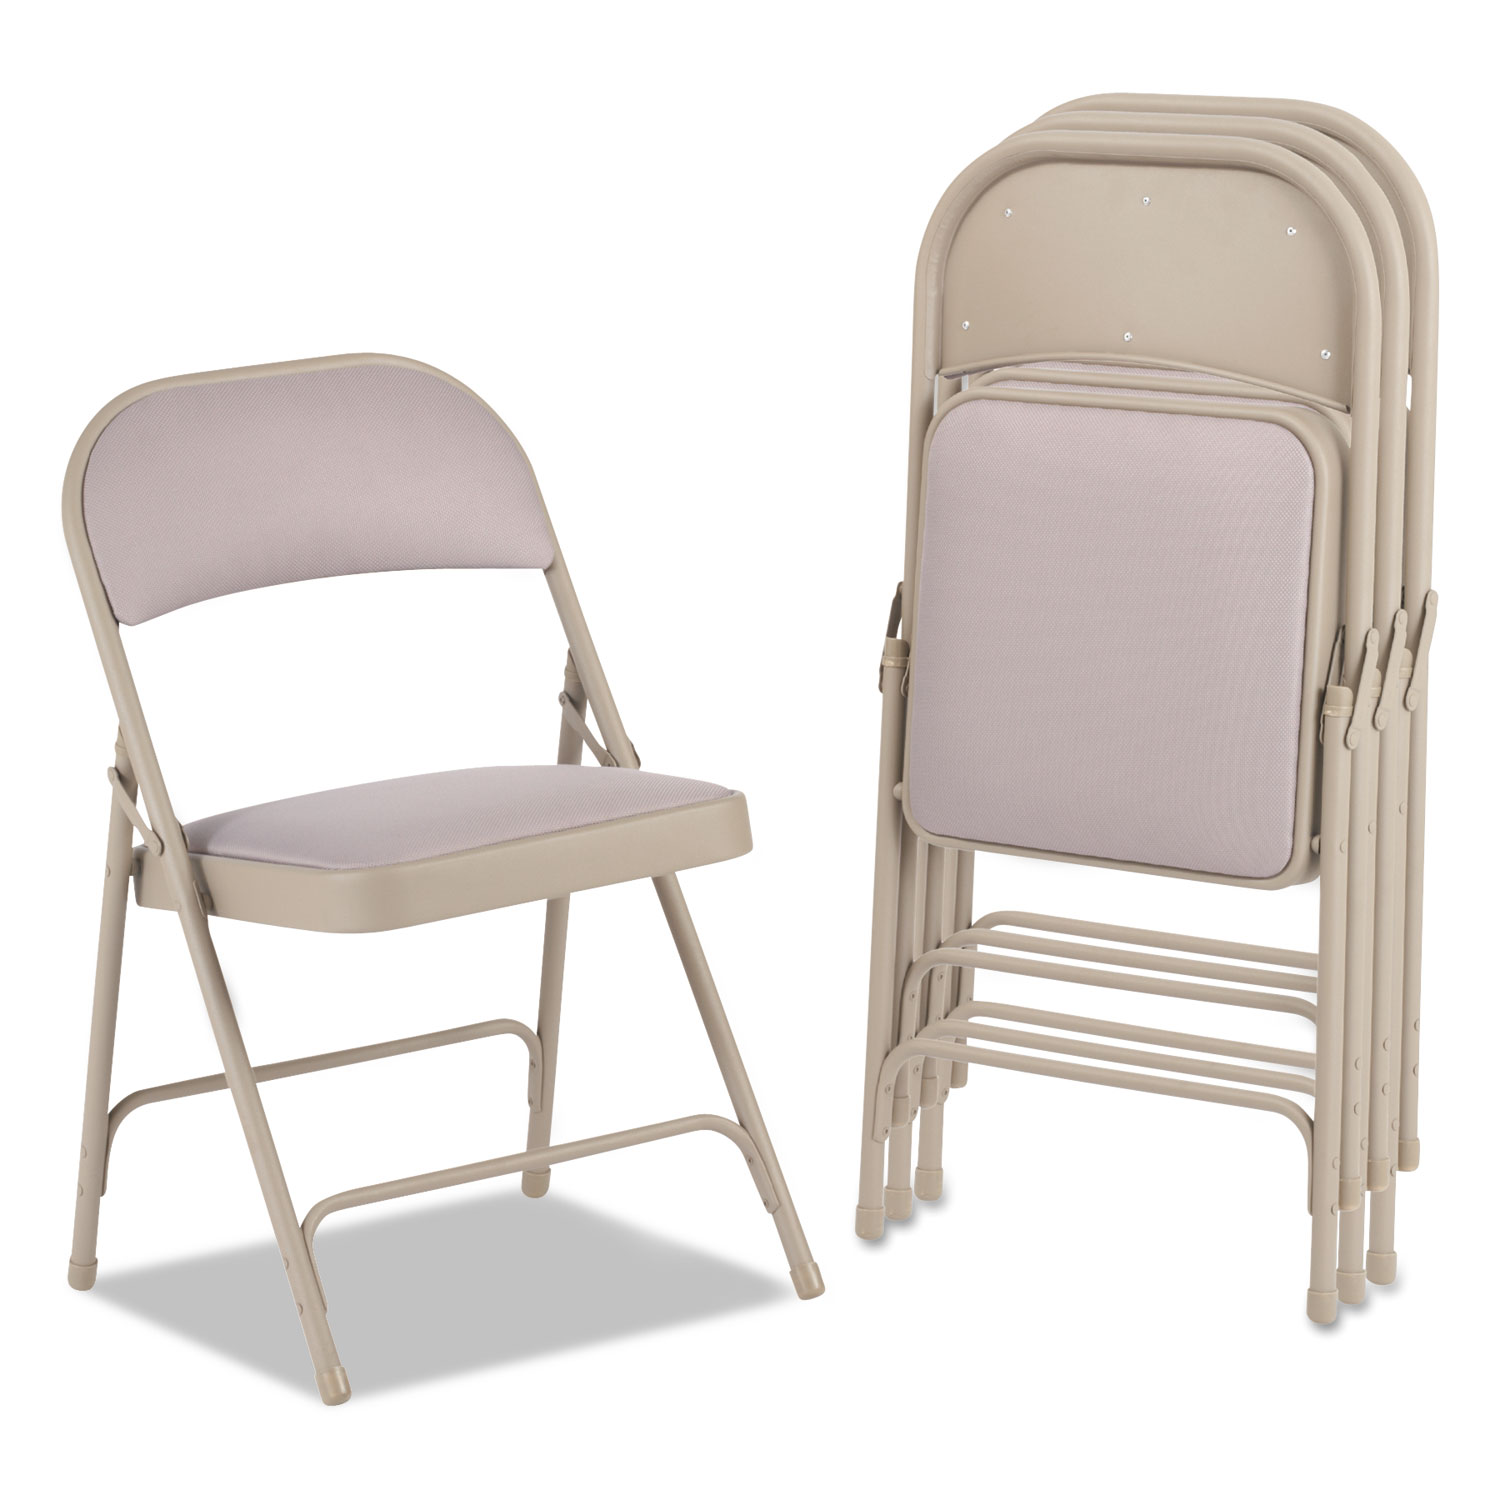 folding fabric chairs chair cover rentals kitchener waterloo steel with two brace support back seat tan 4 cart